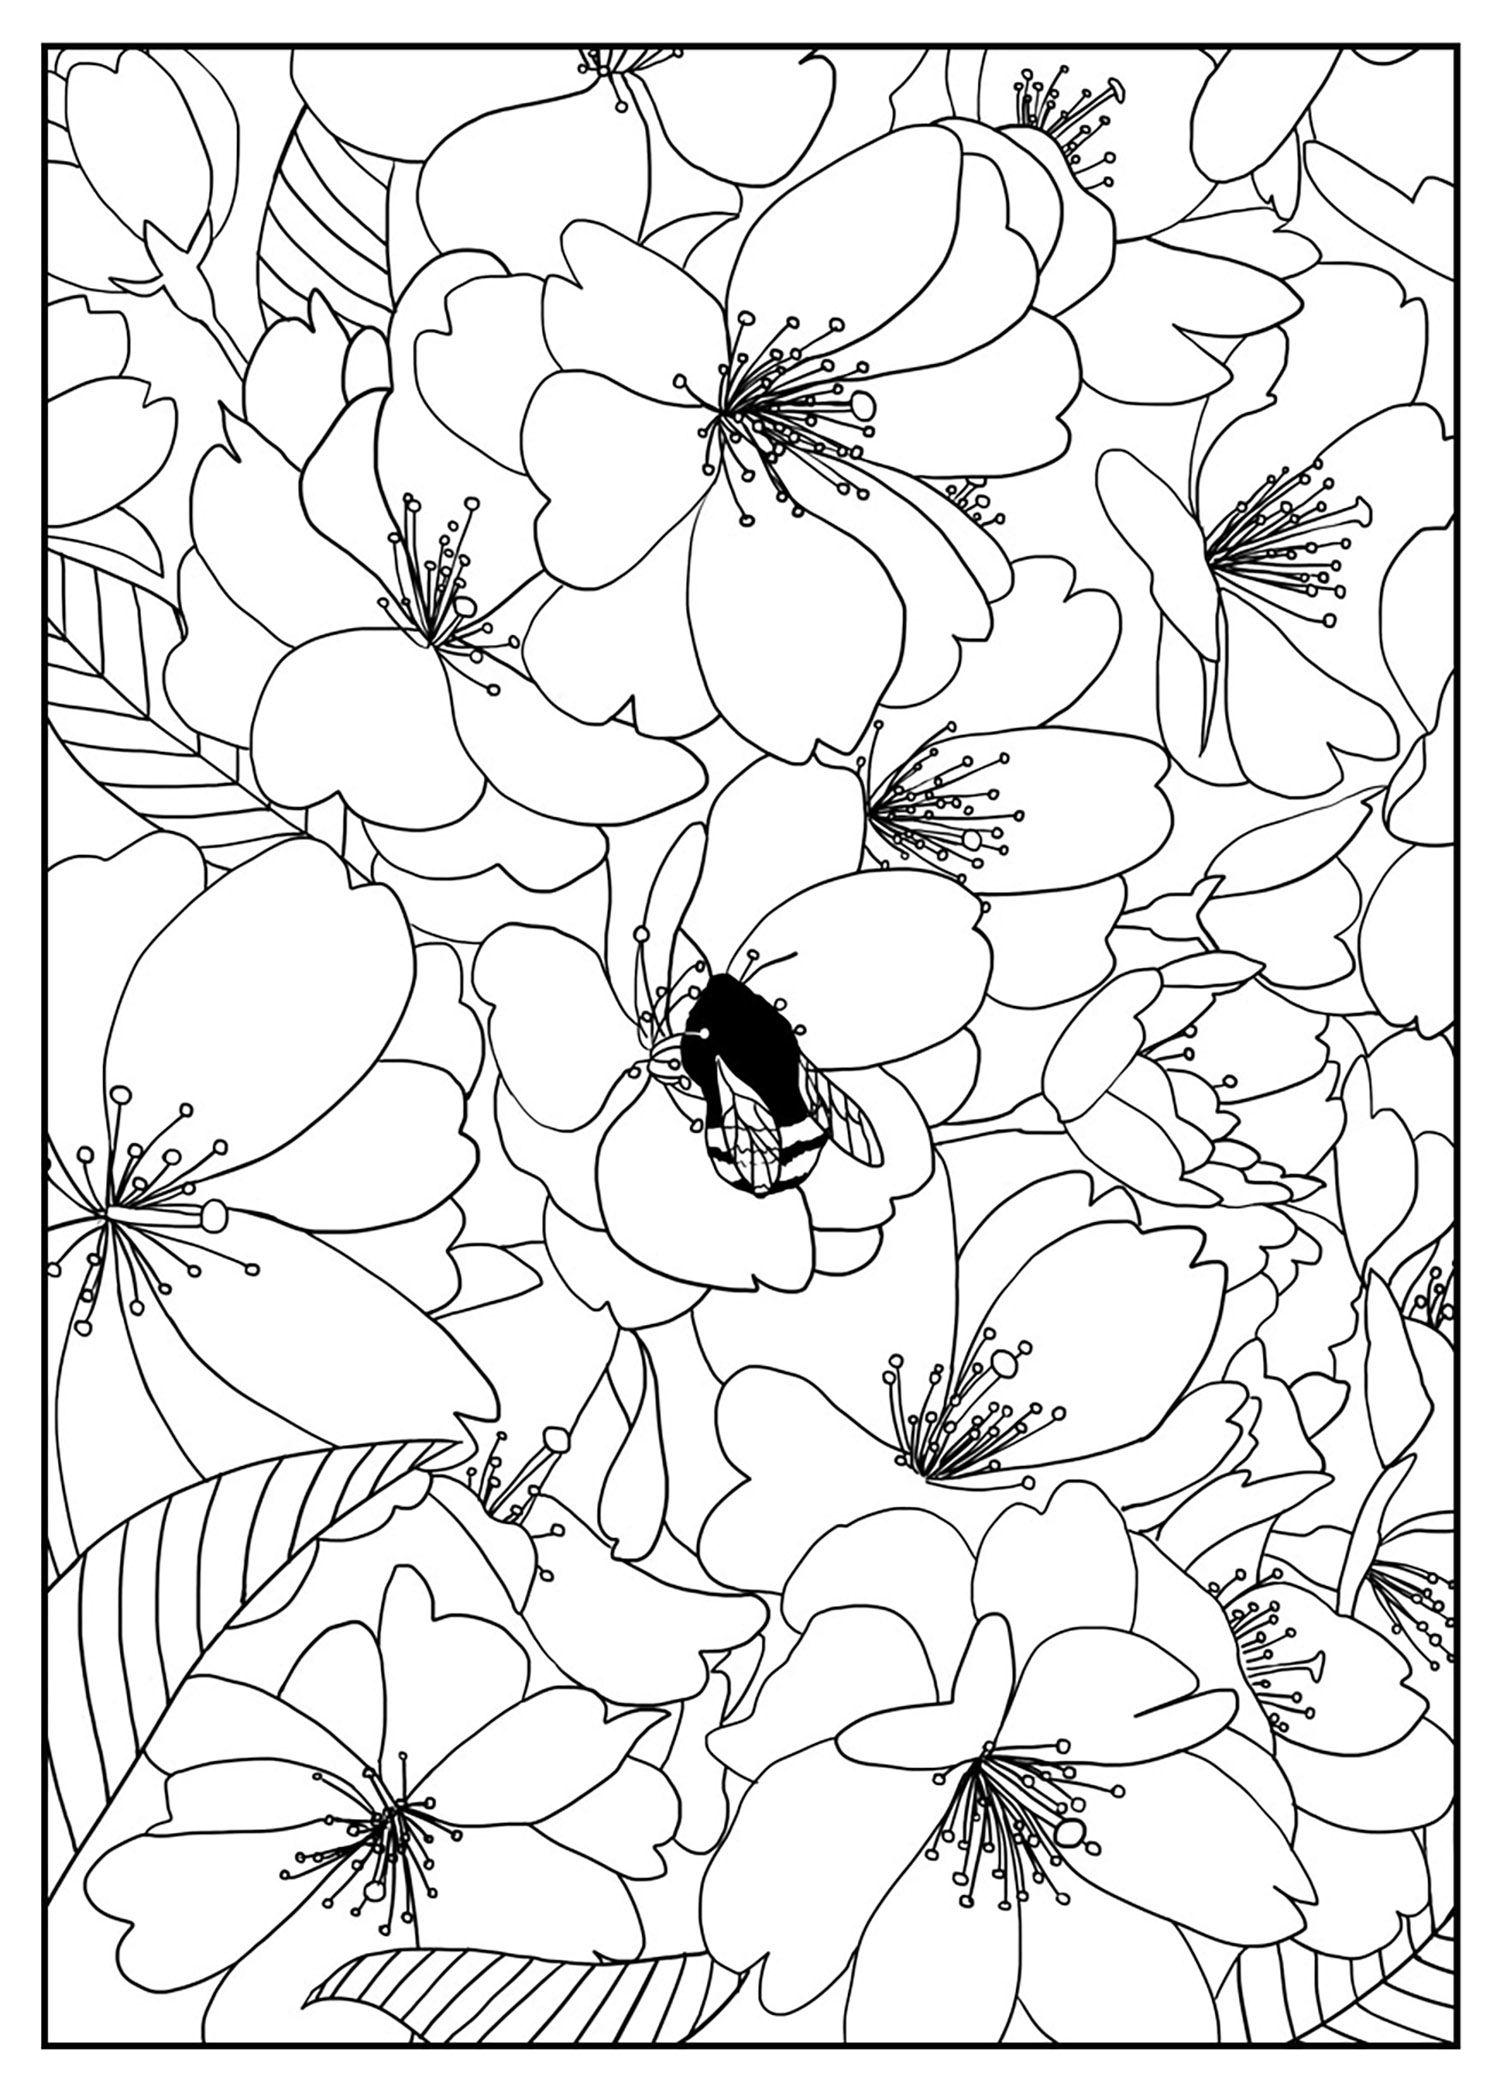 Free Coloring Page Coloring Adult Cherry Tree By Mizu Cherry Tree - coloring pages flowers and trees